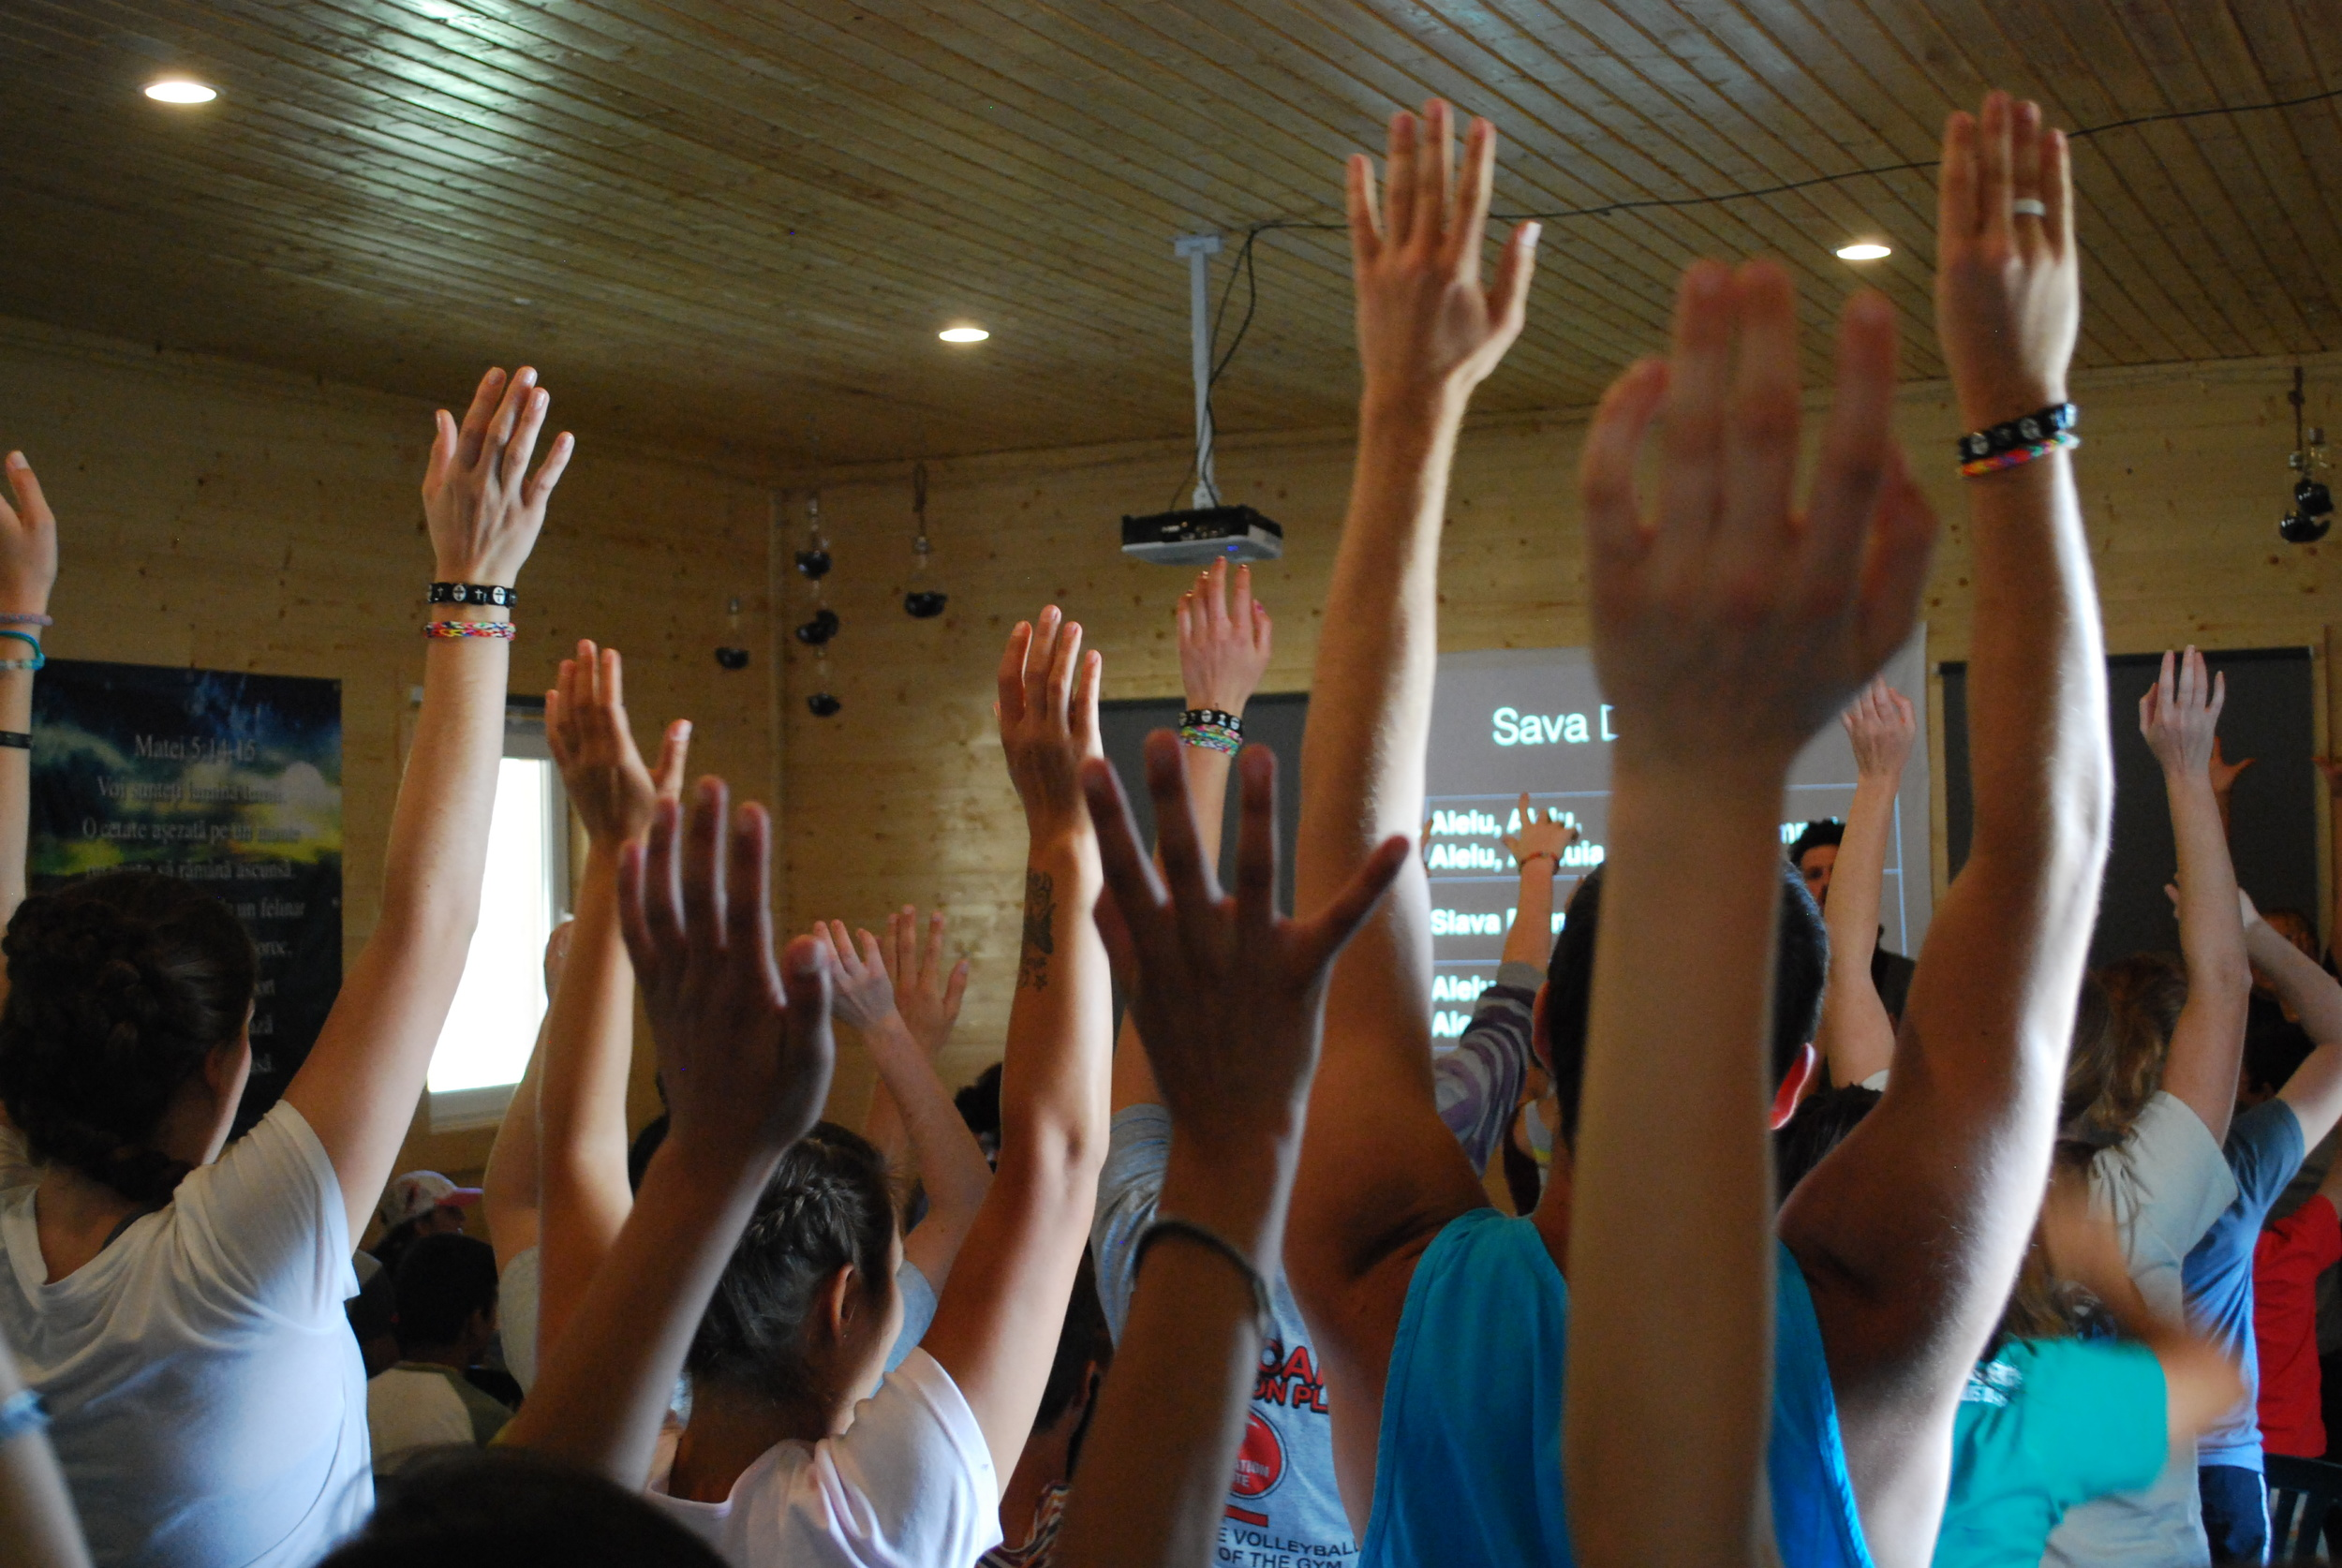 Our morning and evening worship times were spectacular!